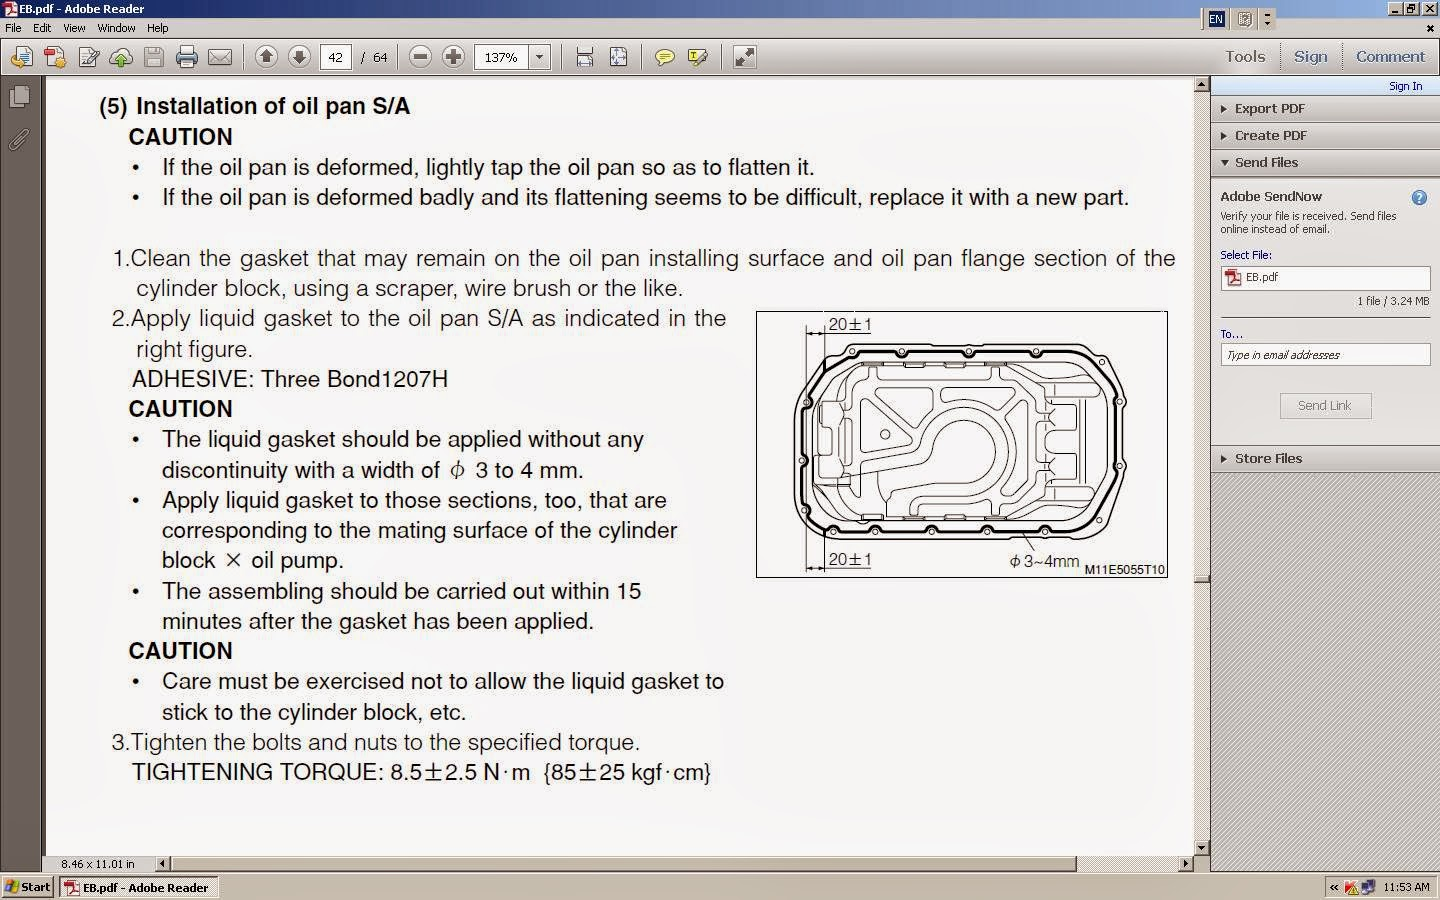 Wiring Diagram Daihatsu Jb Explained Diagrams Luxio Kp Gasket January 2014 Basic Electrical Jl And Det Engine Oil